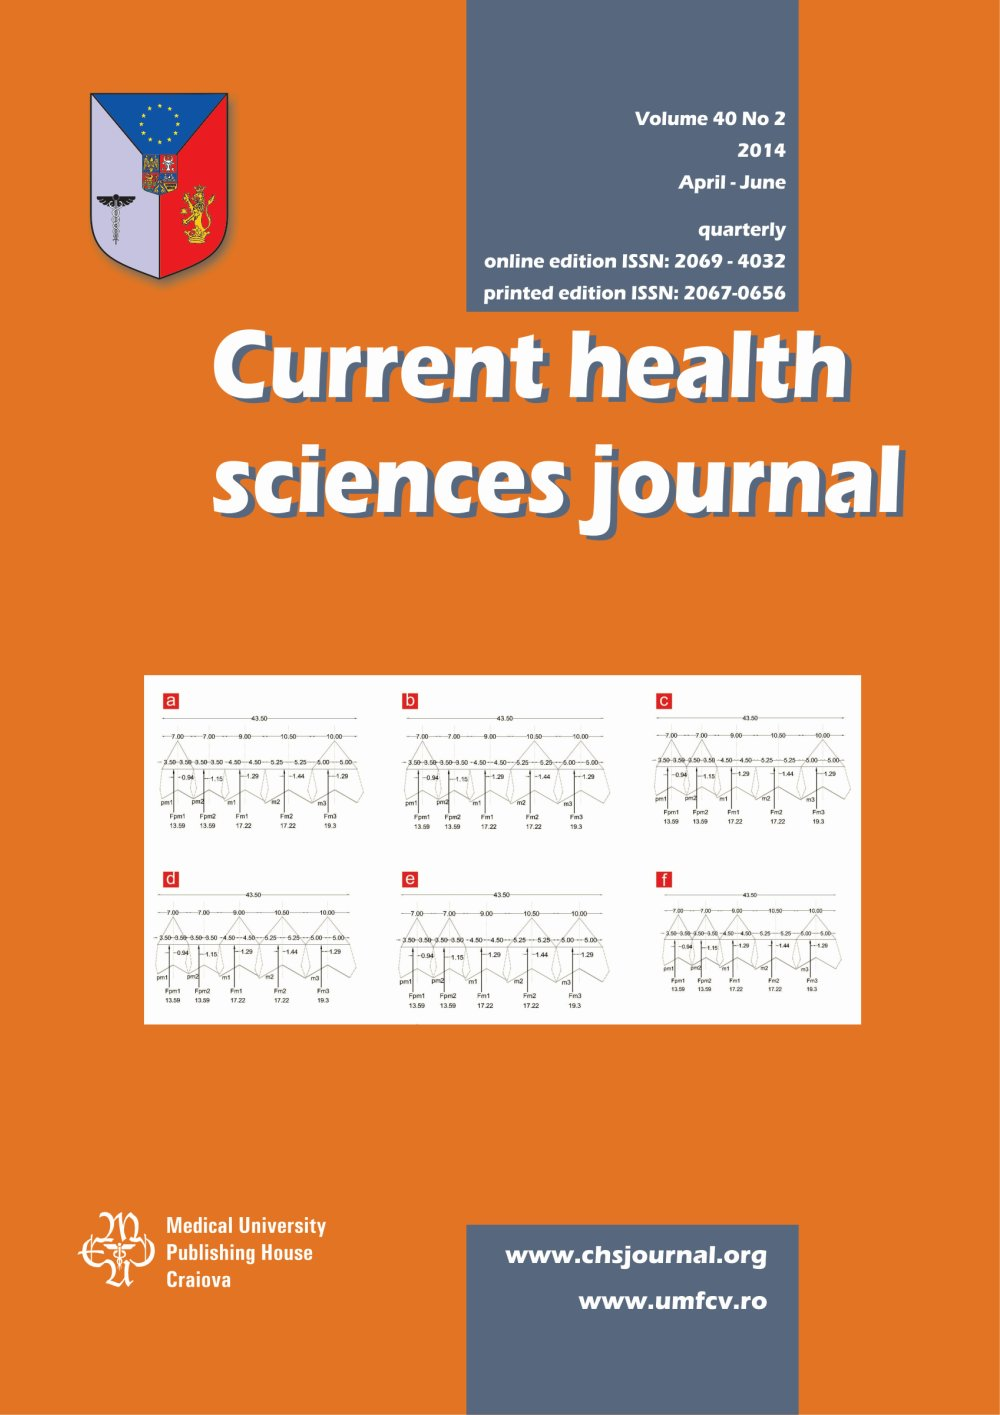 Current Health Sciences Journal, vol. 40 no. 2, 2014